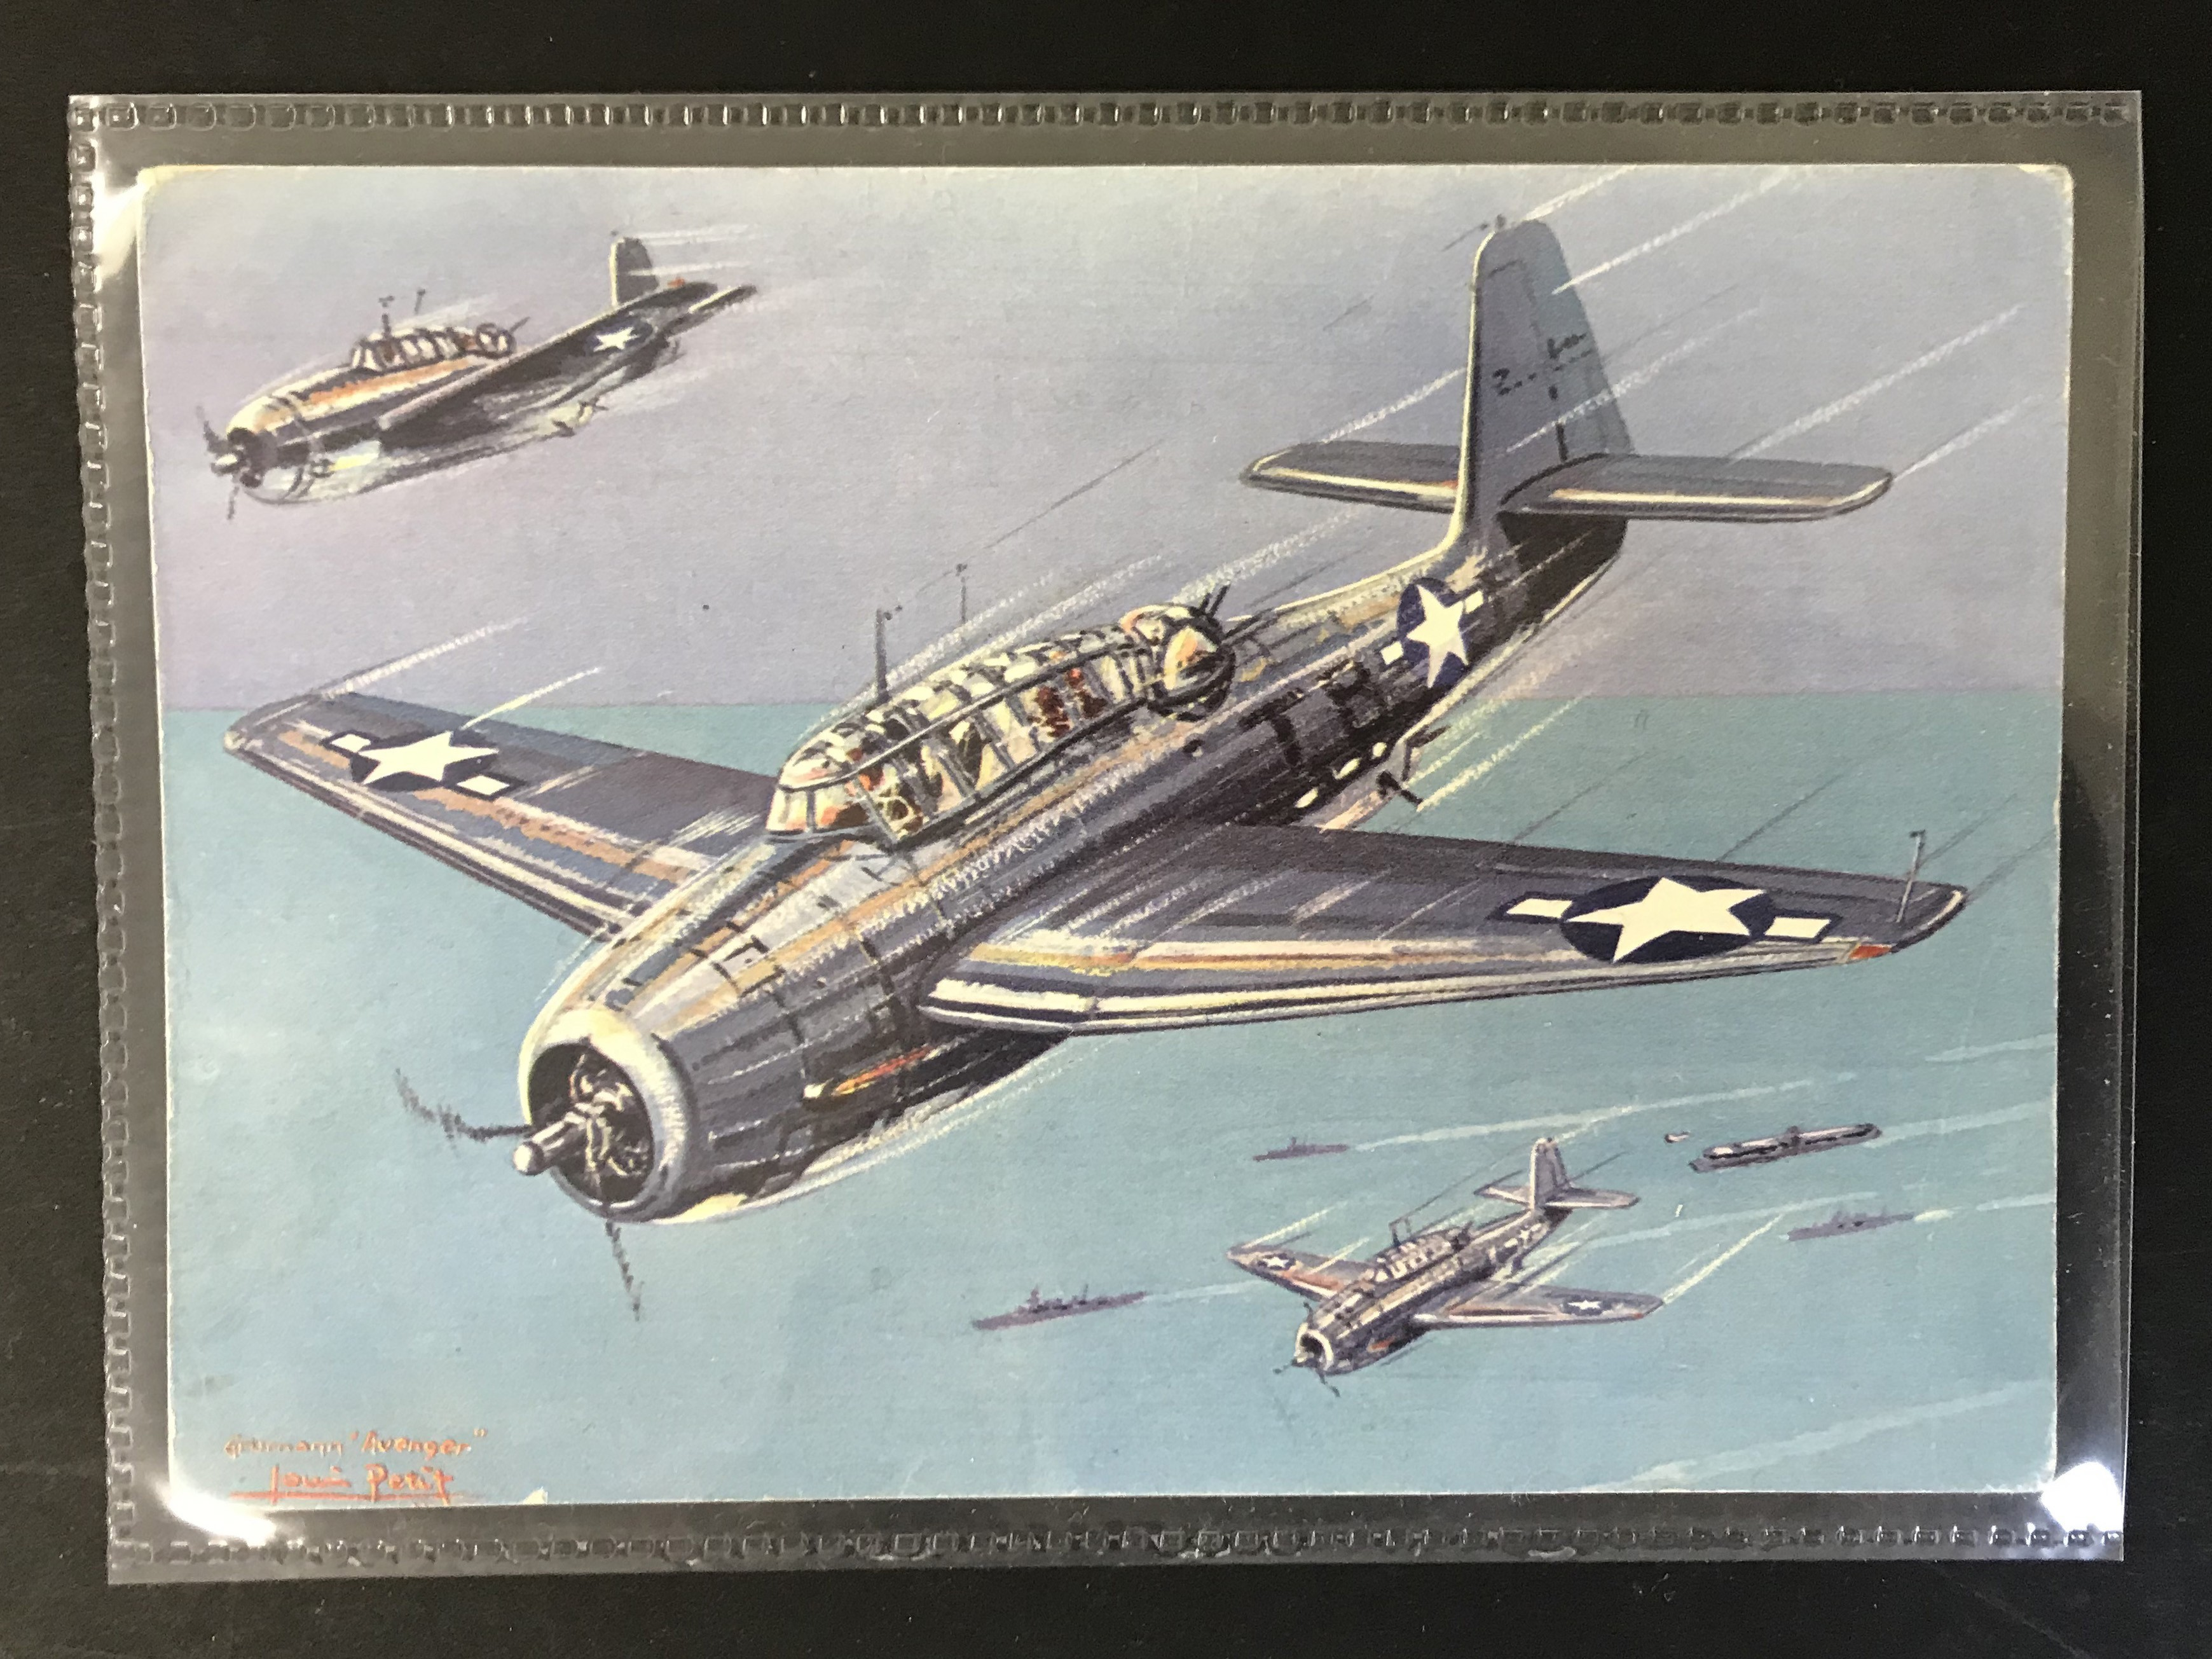 GROUP OF TWELVE FRENCH PLANES RELATED POSTCARDS - VARIOUS SERIES - Image 9 of 14